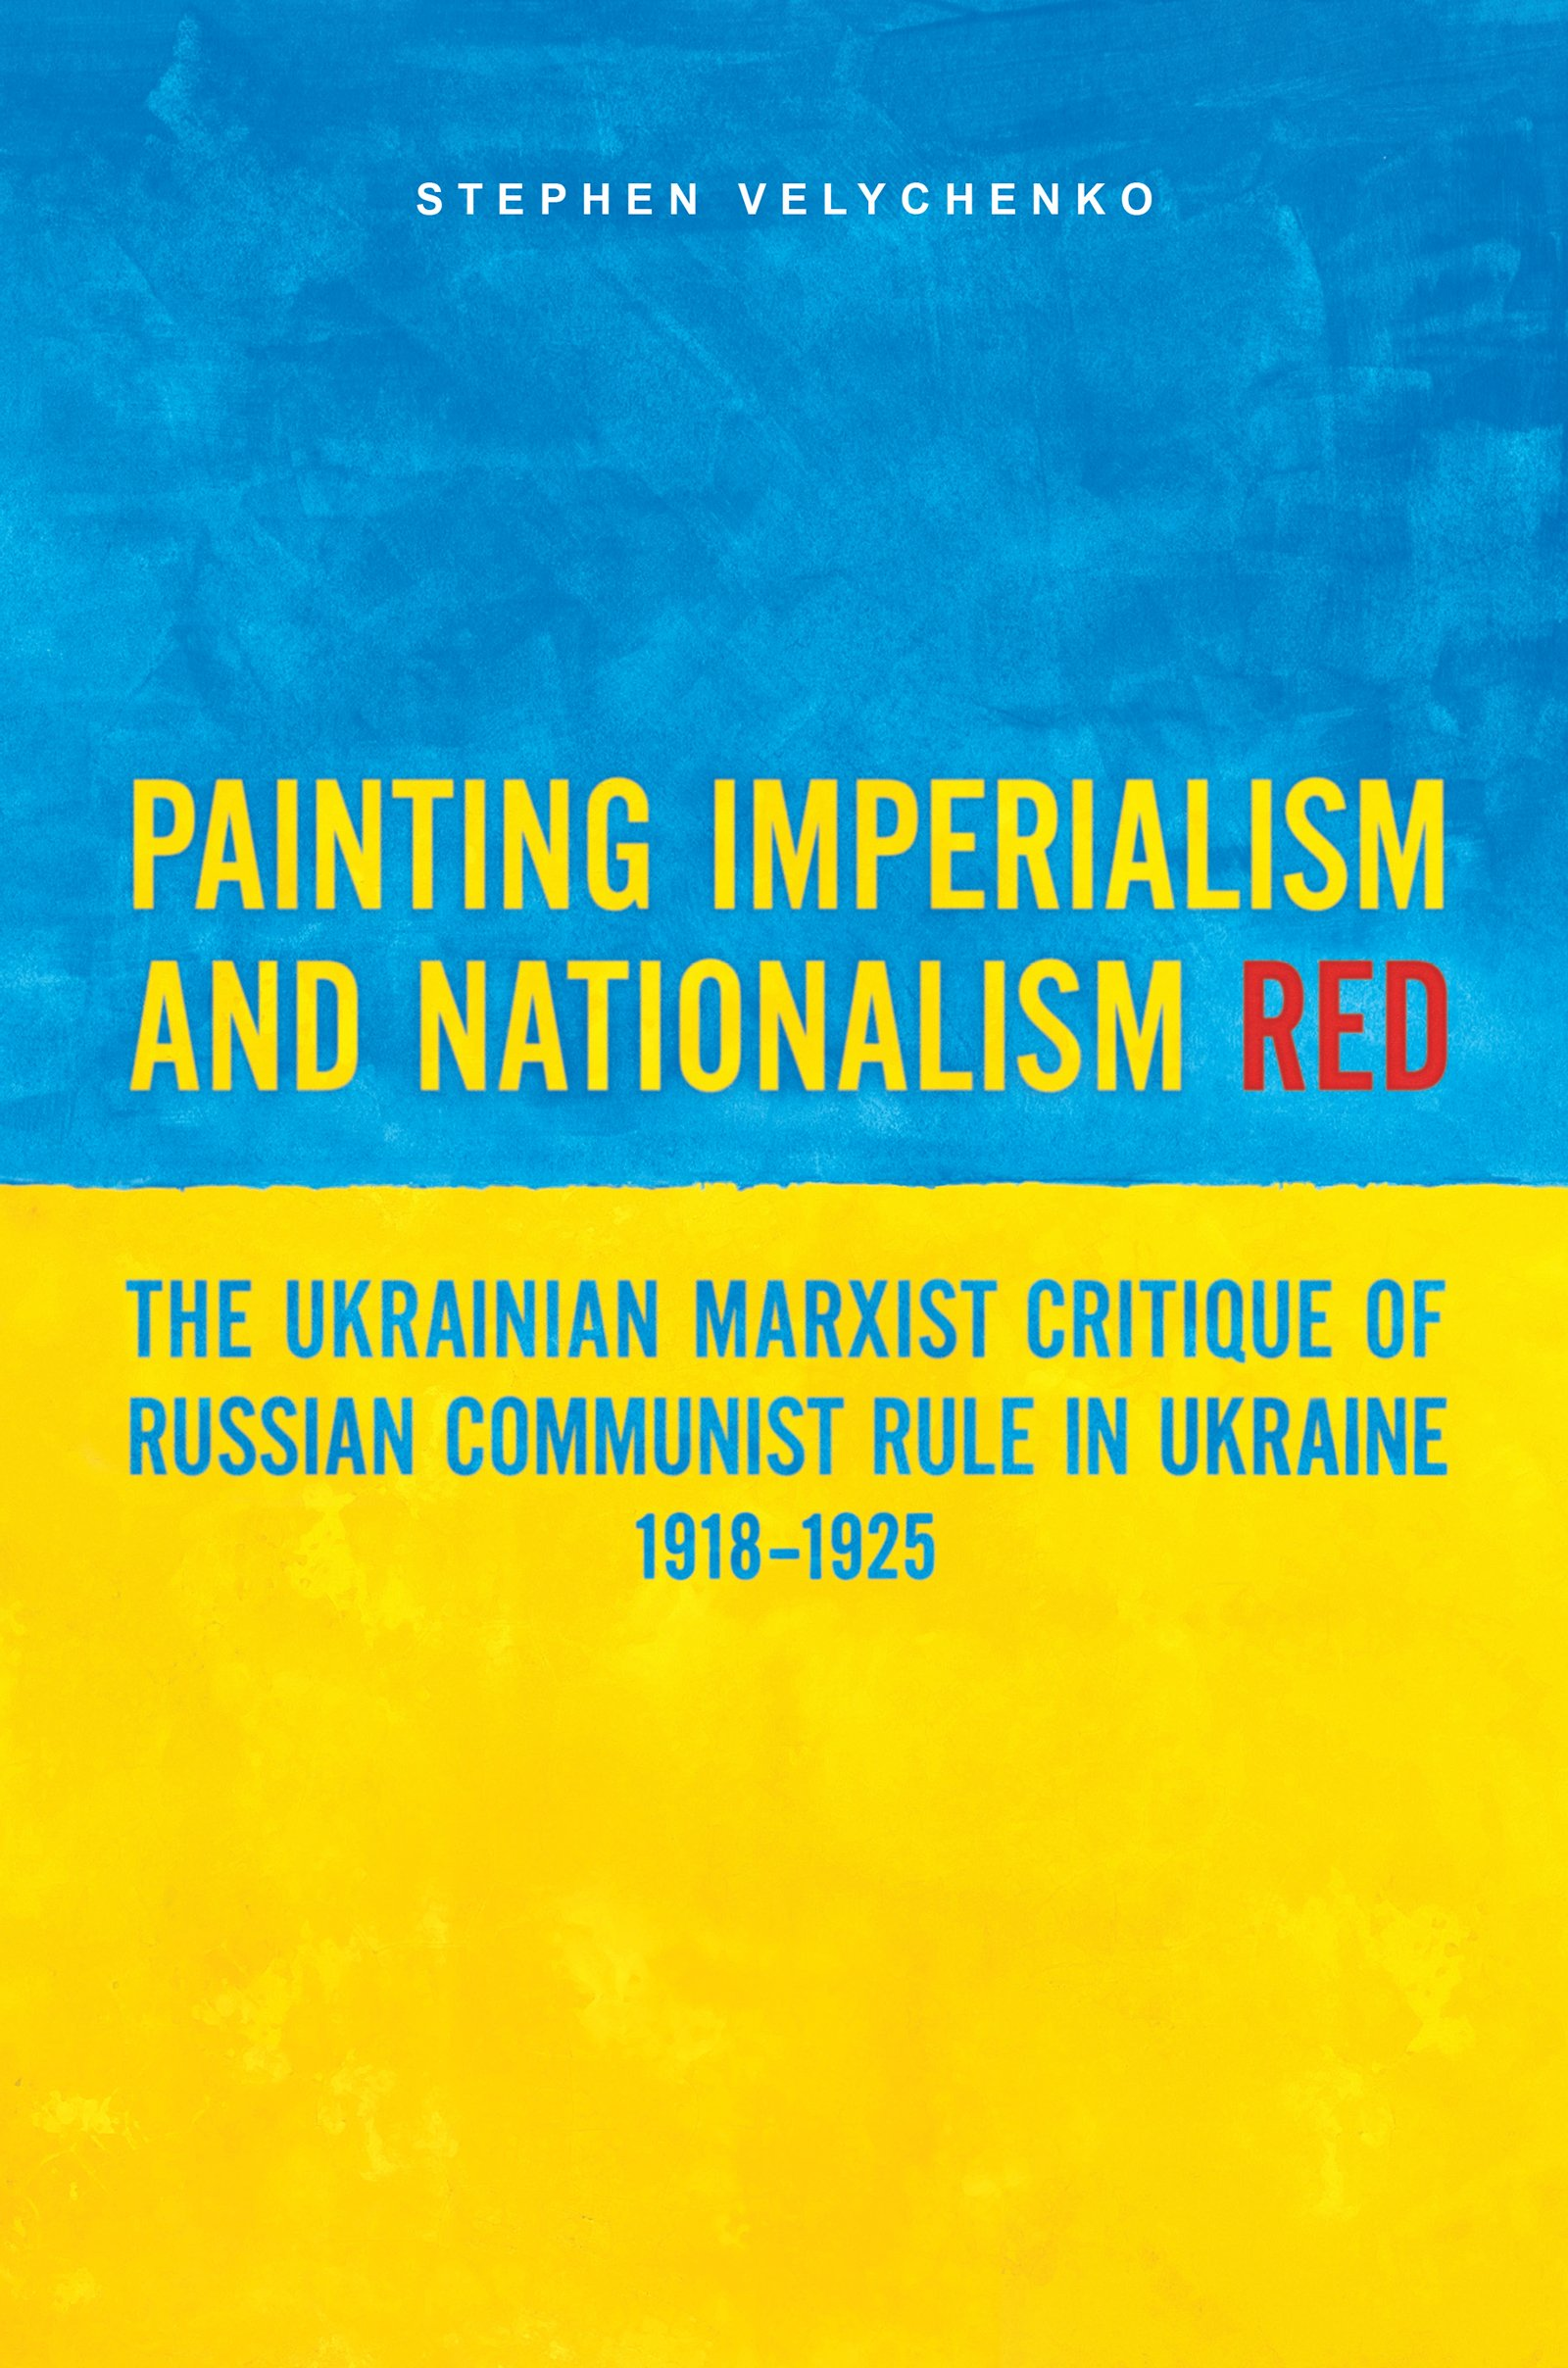 Painting Imperialism and Nationalism Red: The Ukrainian Marxist Critique of Russian Communist Rule in Ukraine, 1918-1925 pdf epub